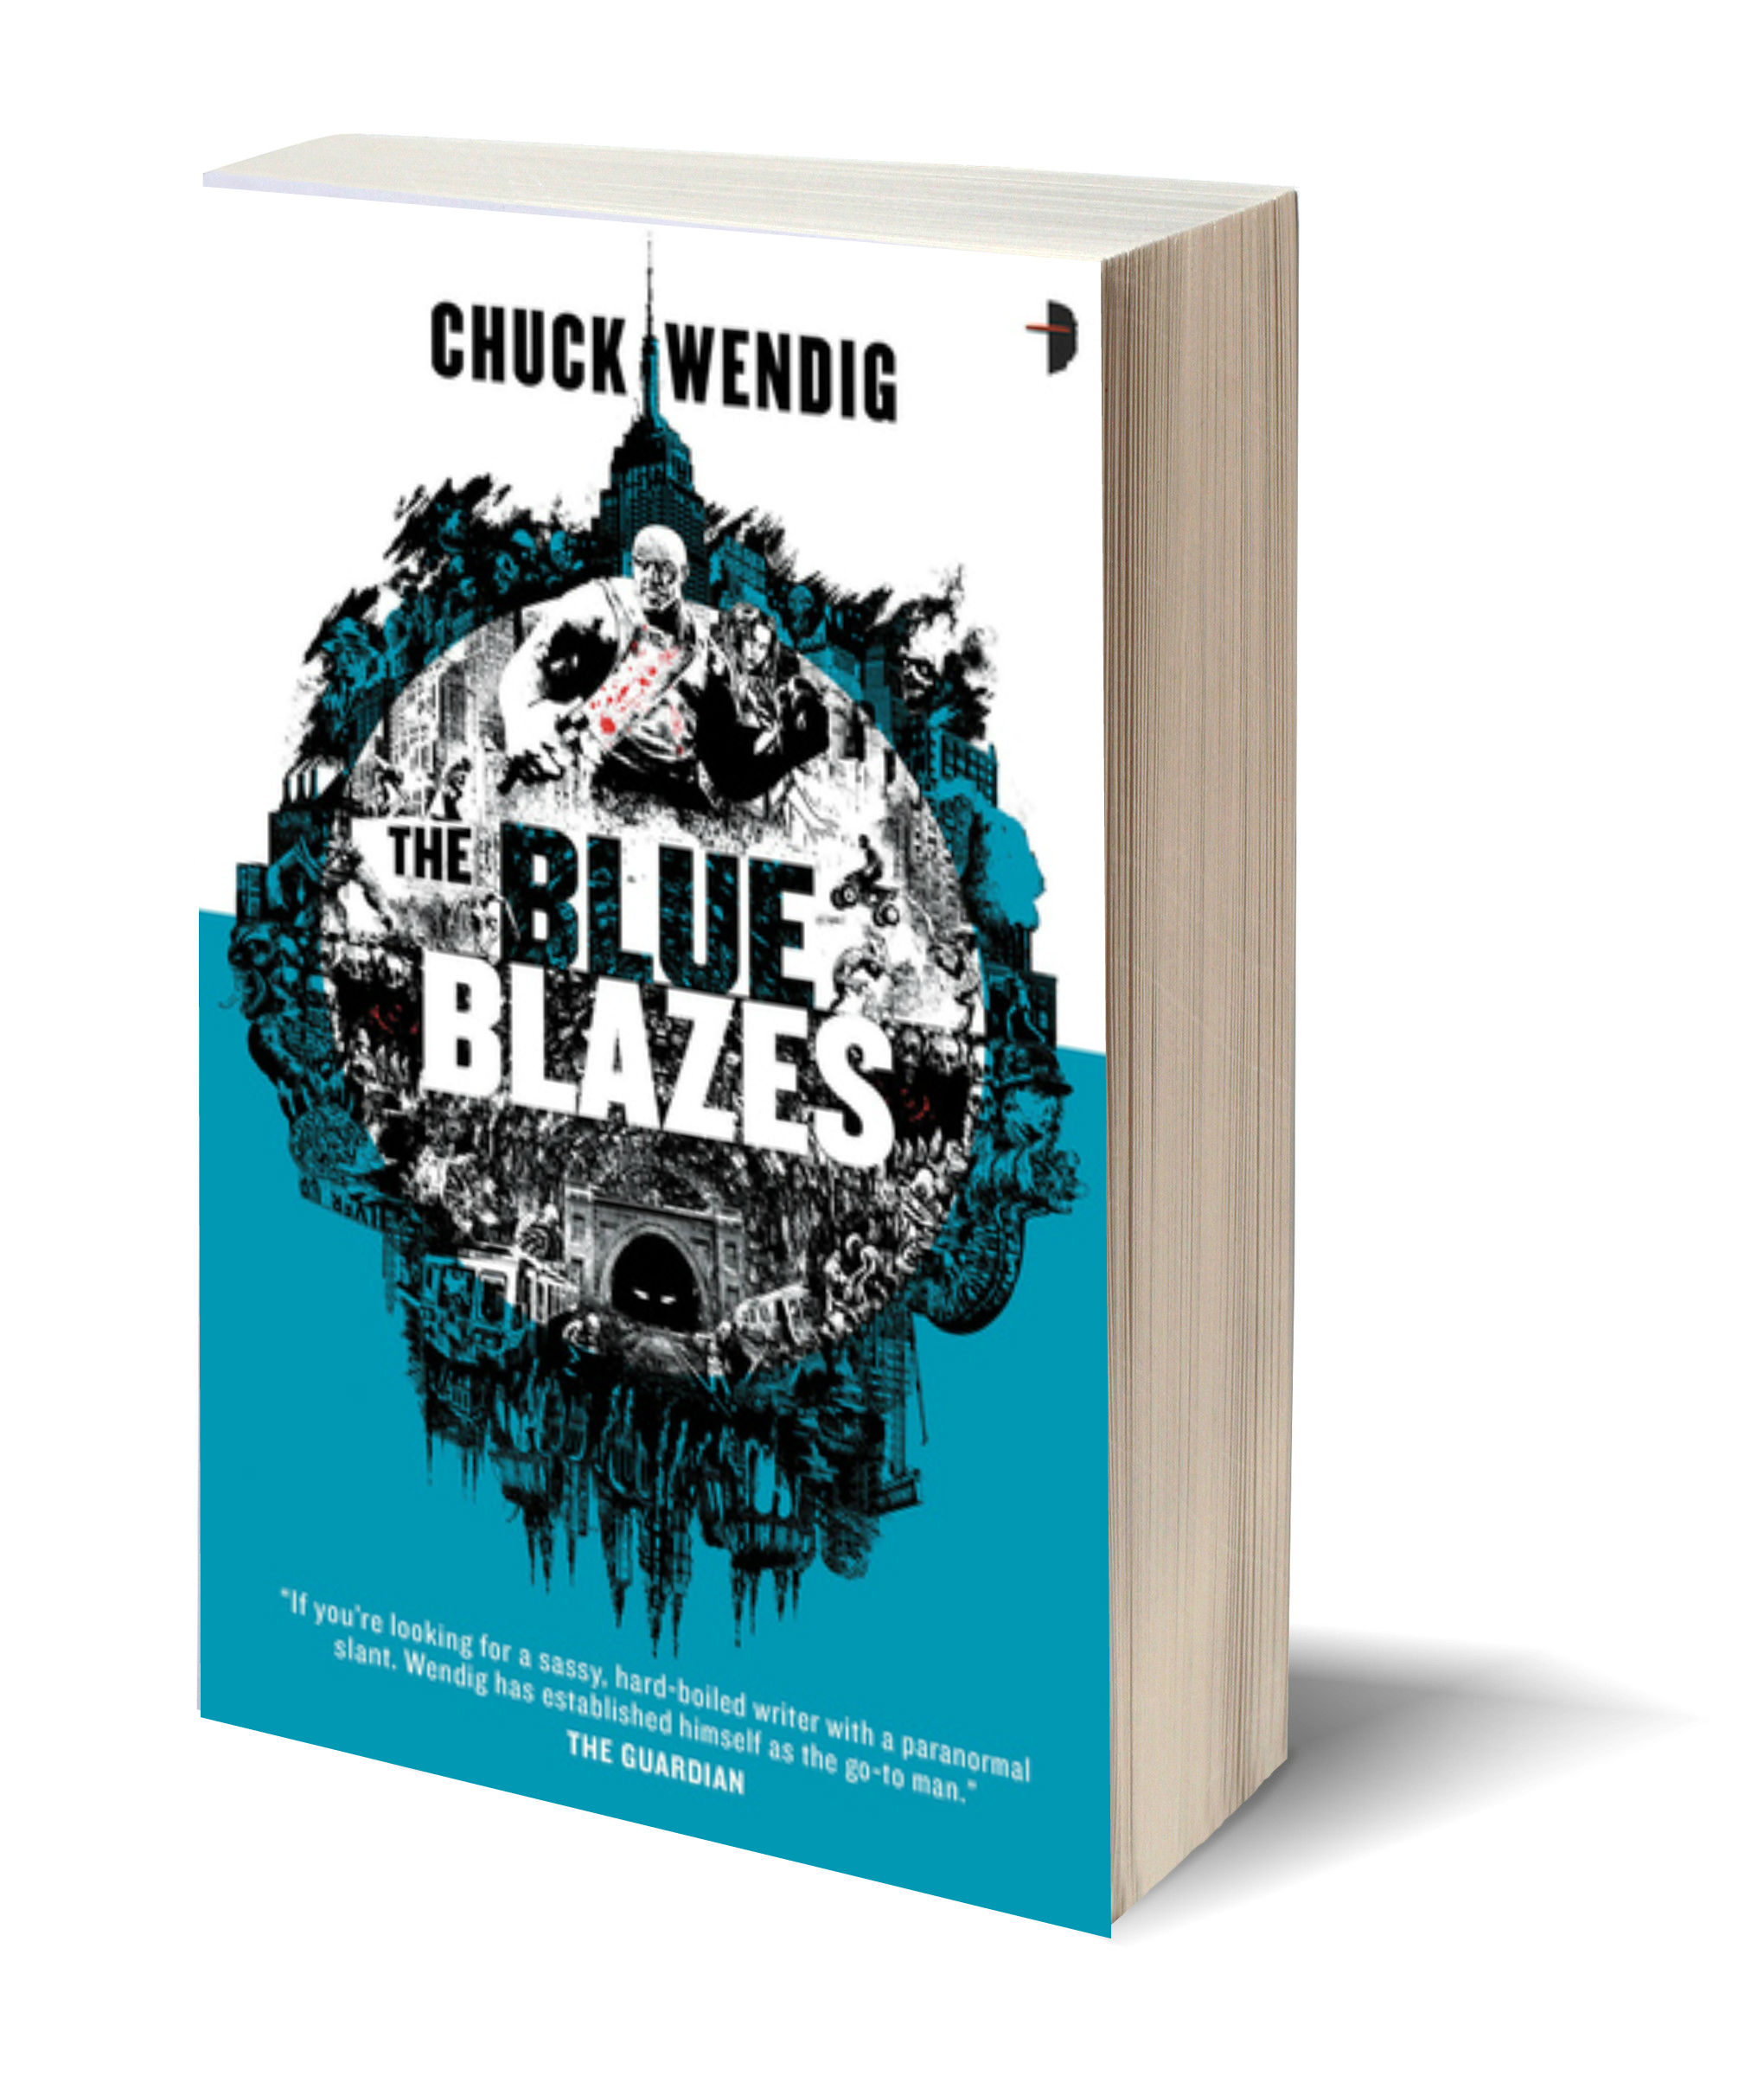 THE BLUE BLAZES by Chuck Wendig – Review & Recipient of My